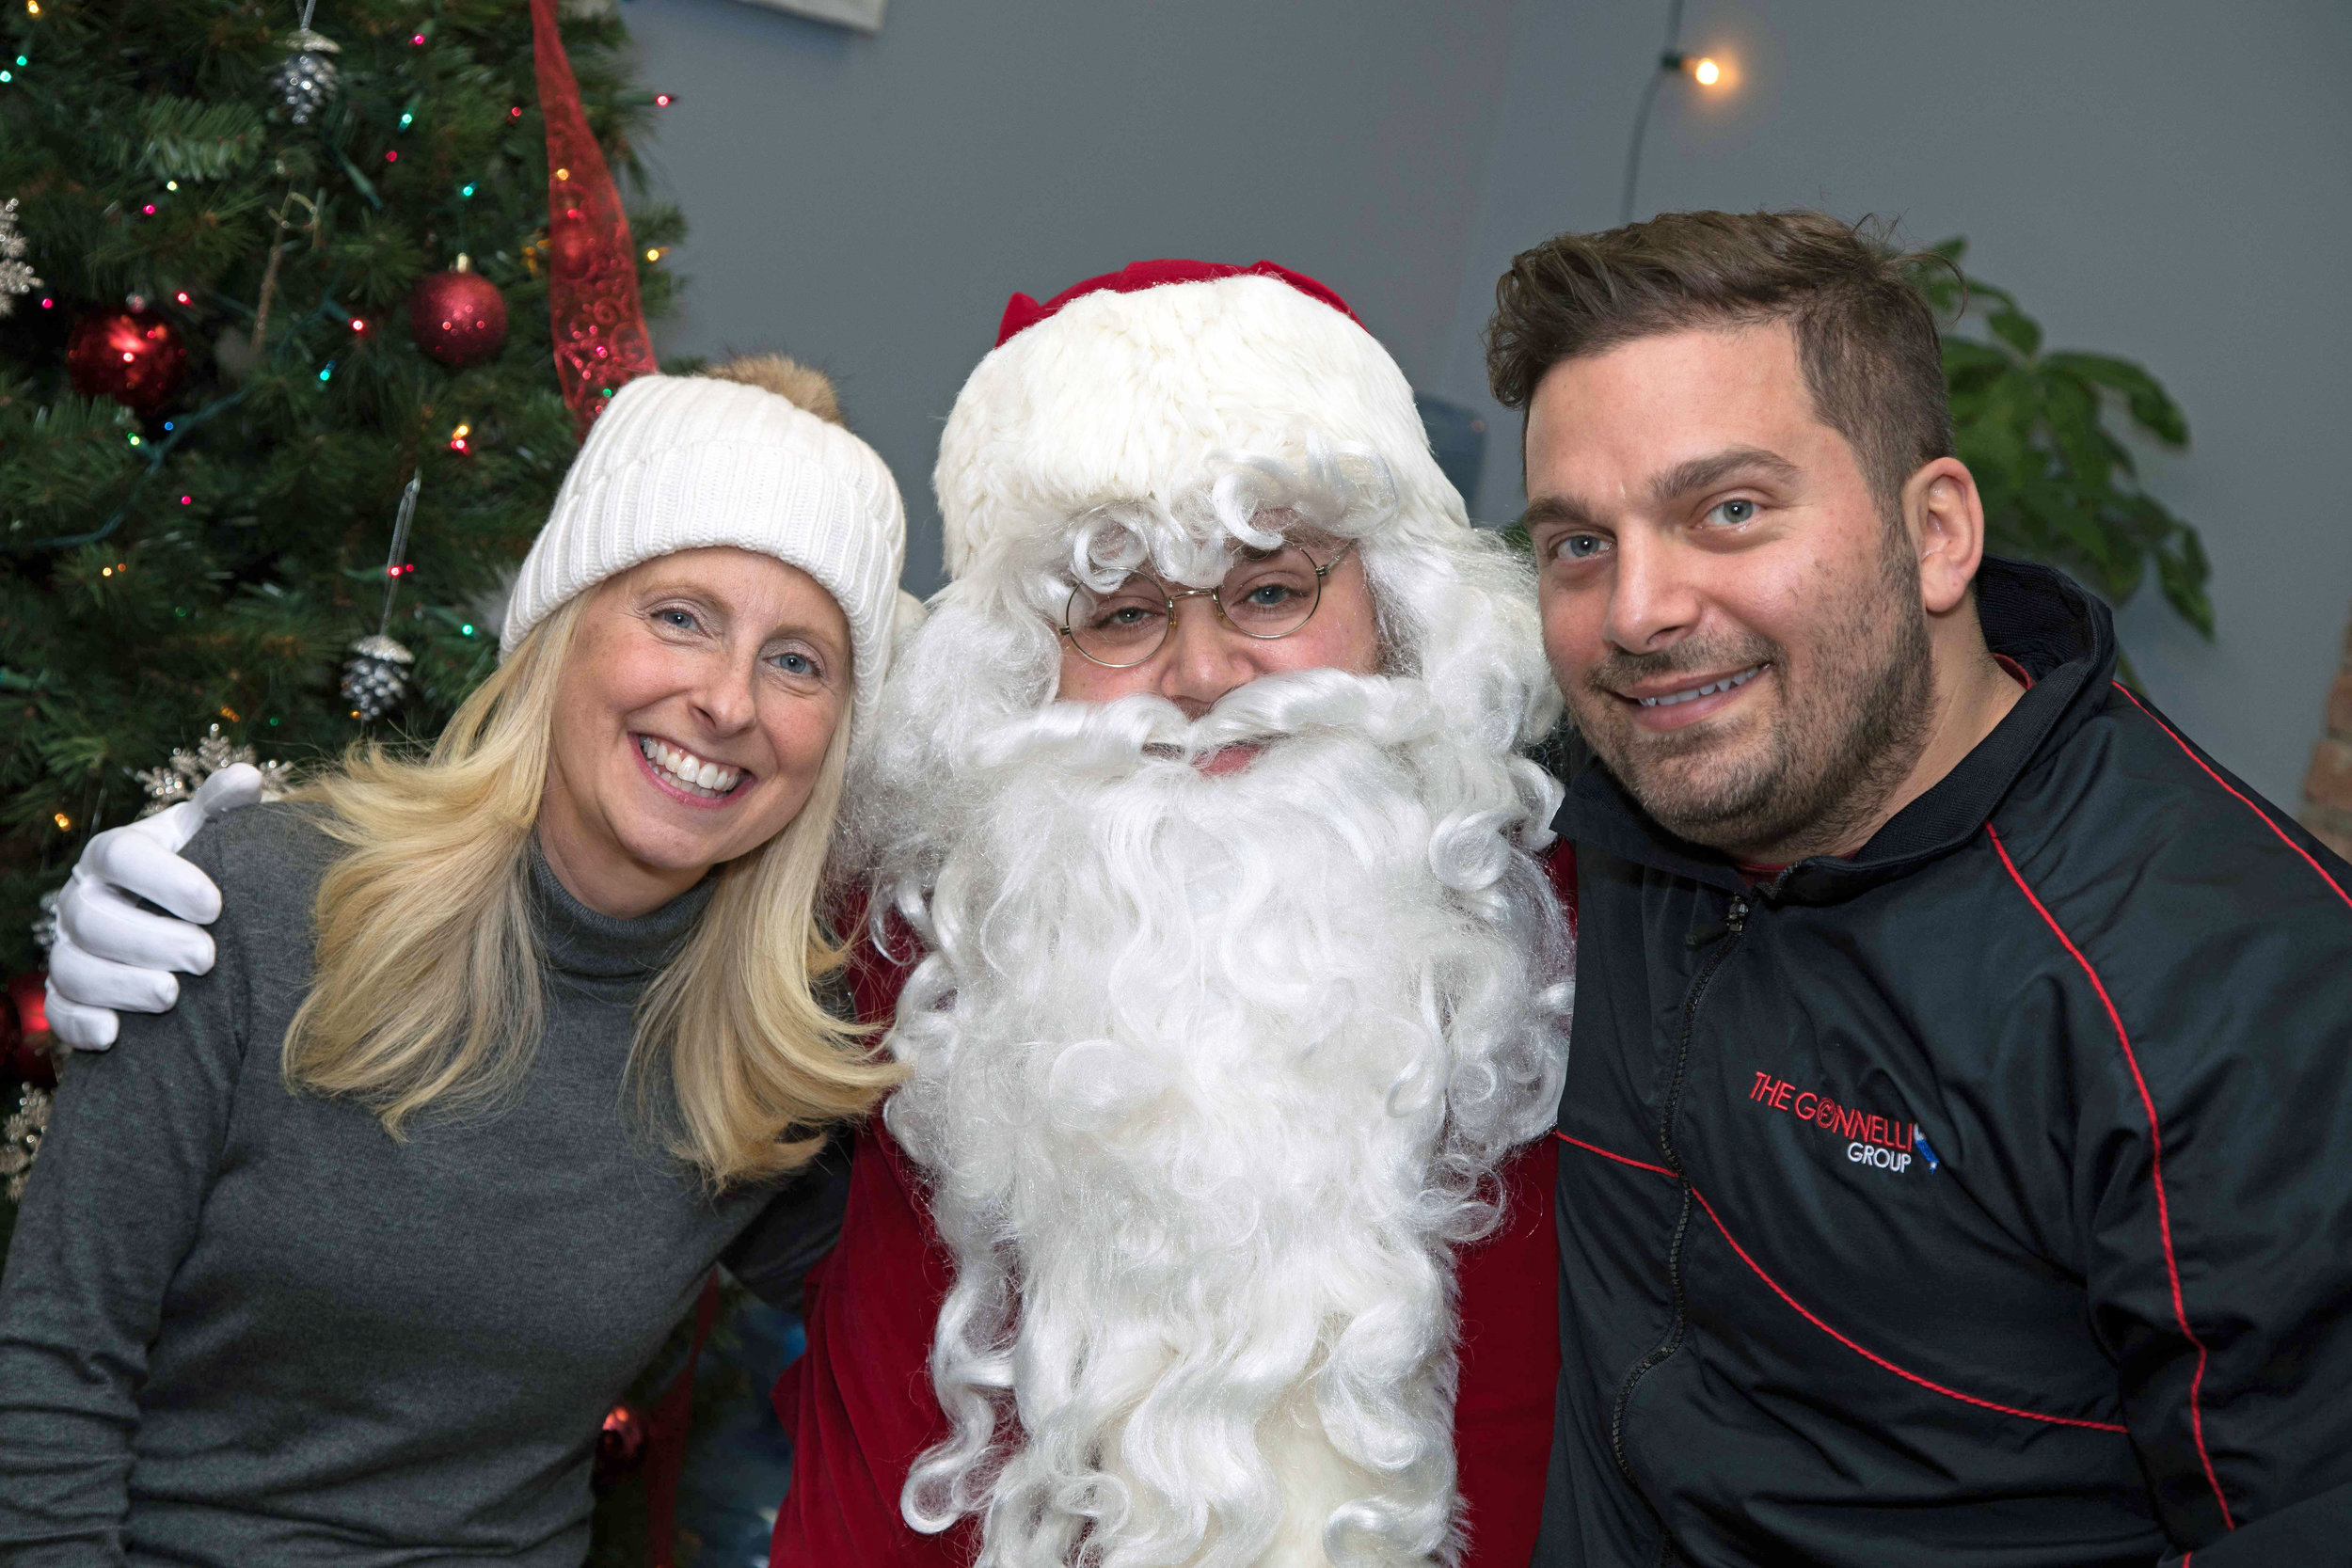 Hosts (from left to right) : Sonia Andriani, Santa Clause, & Michael Gonnelli - Leaders of the Re/Max Infinity Team running a wonderful event for a great cause.